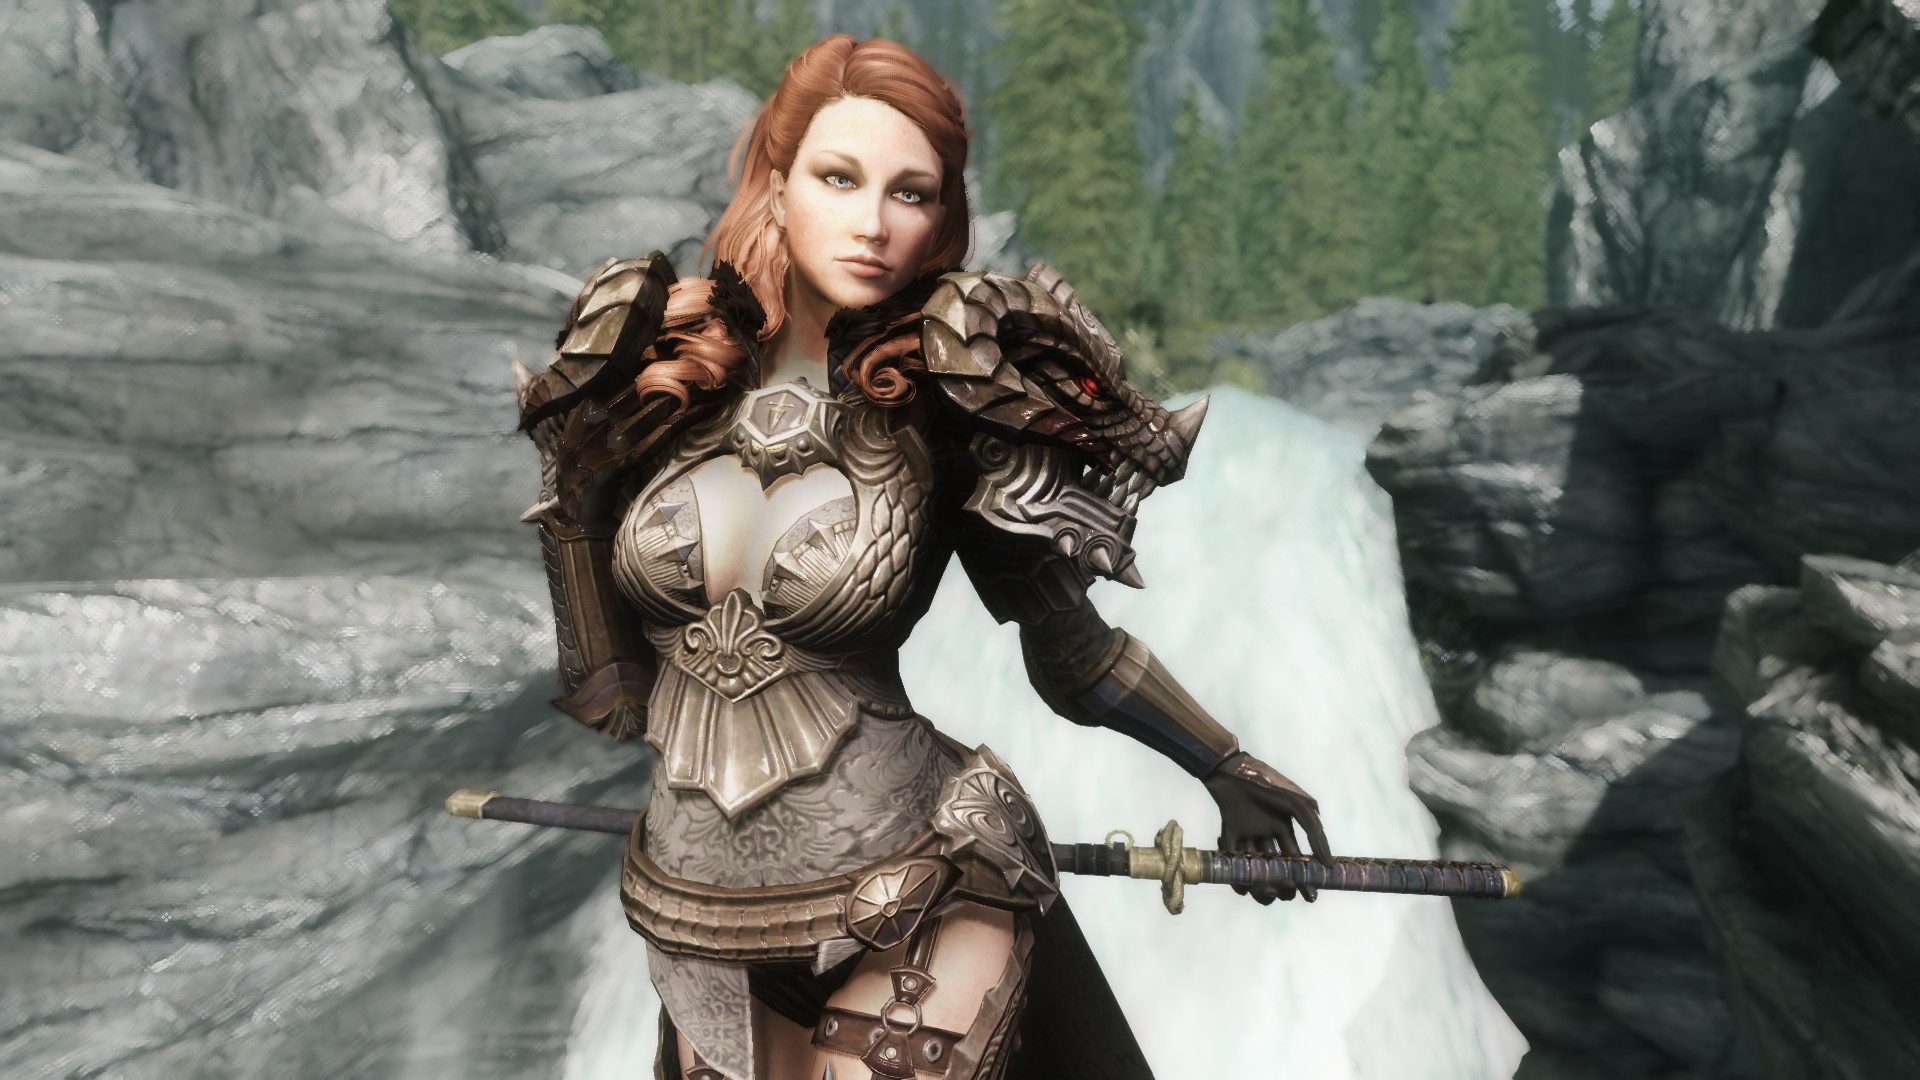 skyrim wallpapers hd wallpapers early